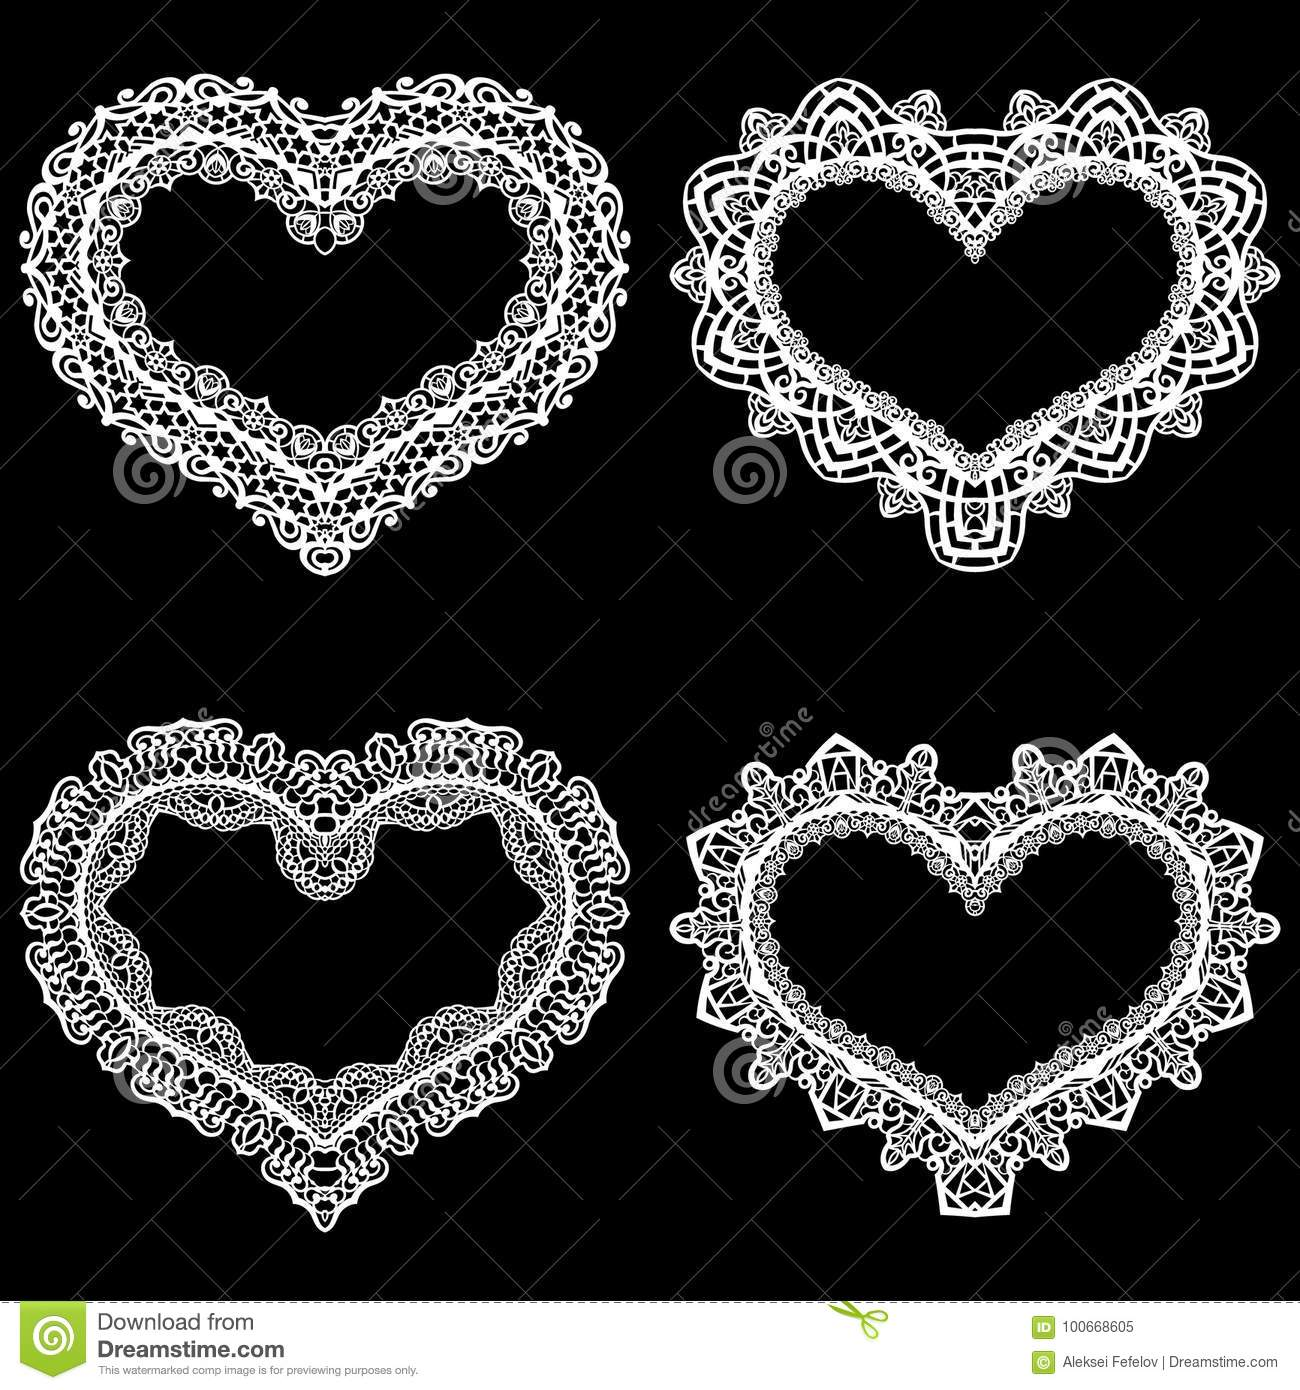 Laser Cut Frame In The Shape Of A Heart With Lace Border. A Set Of ...